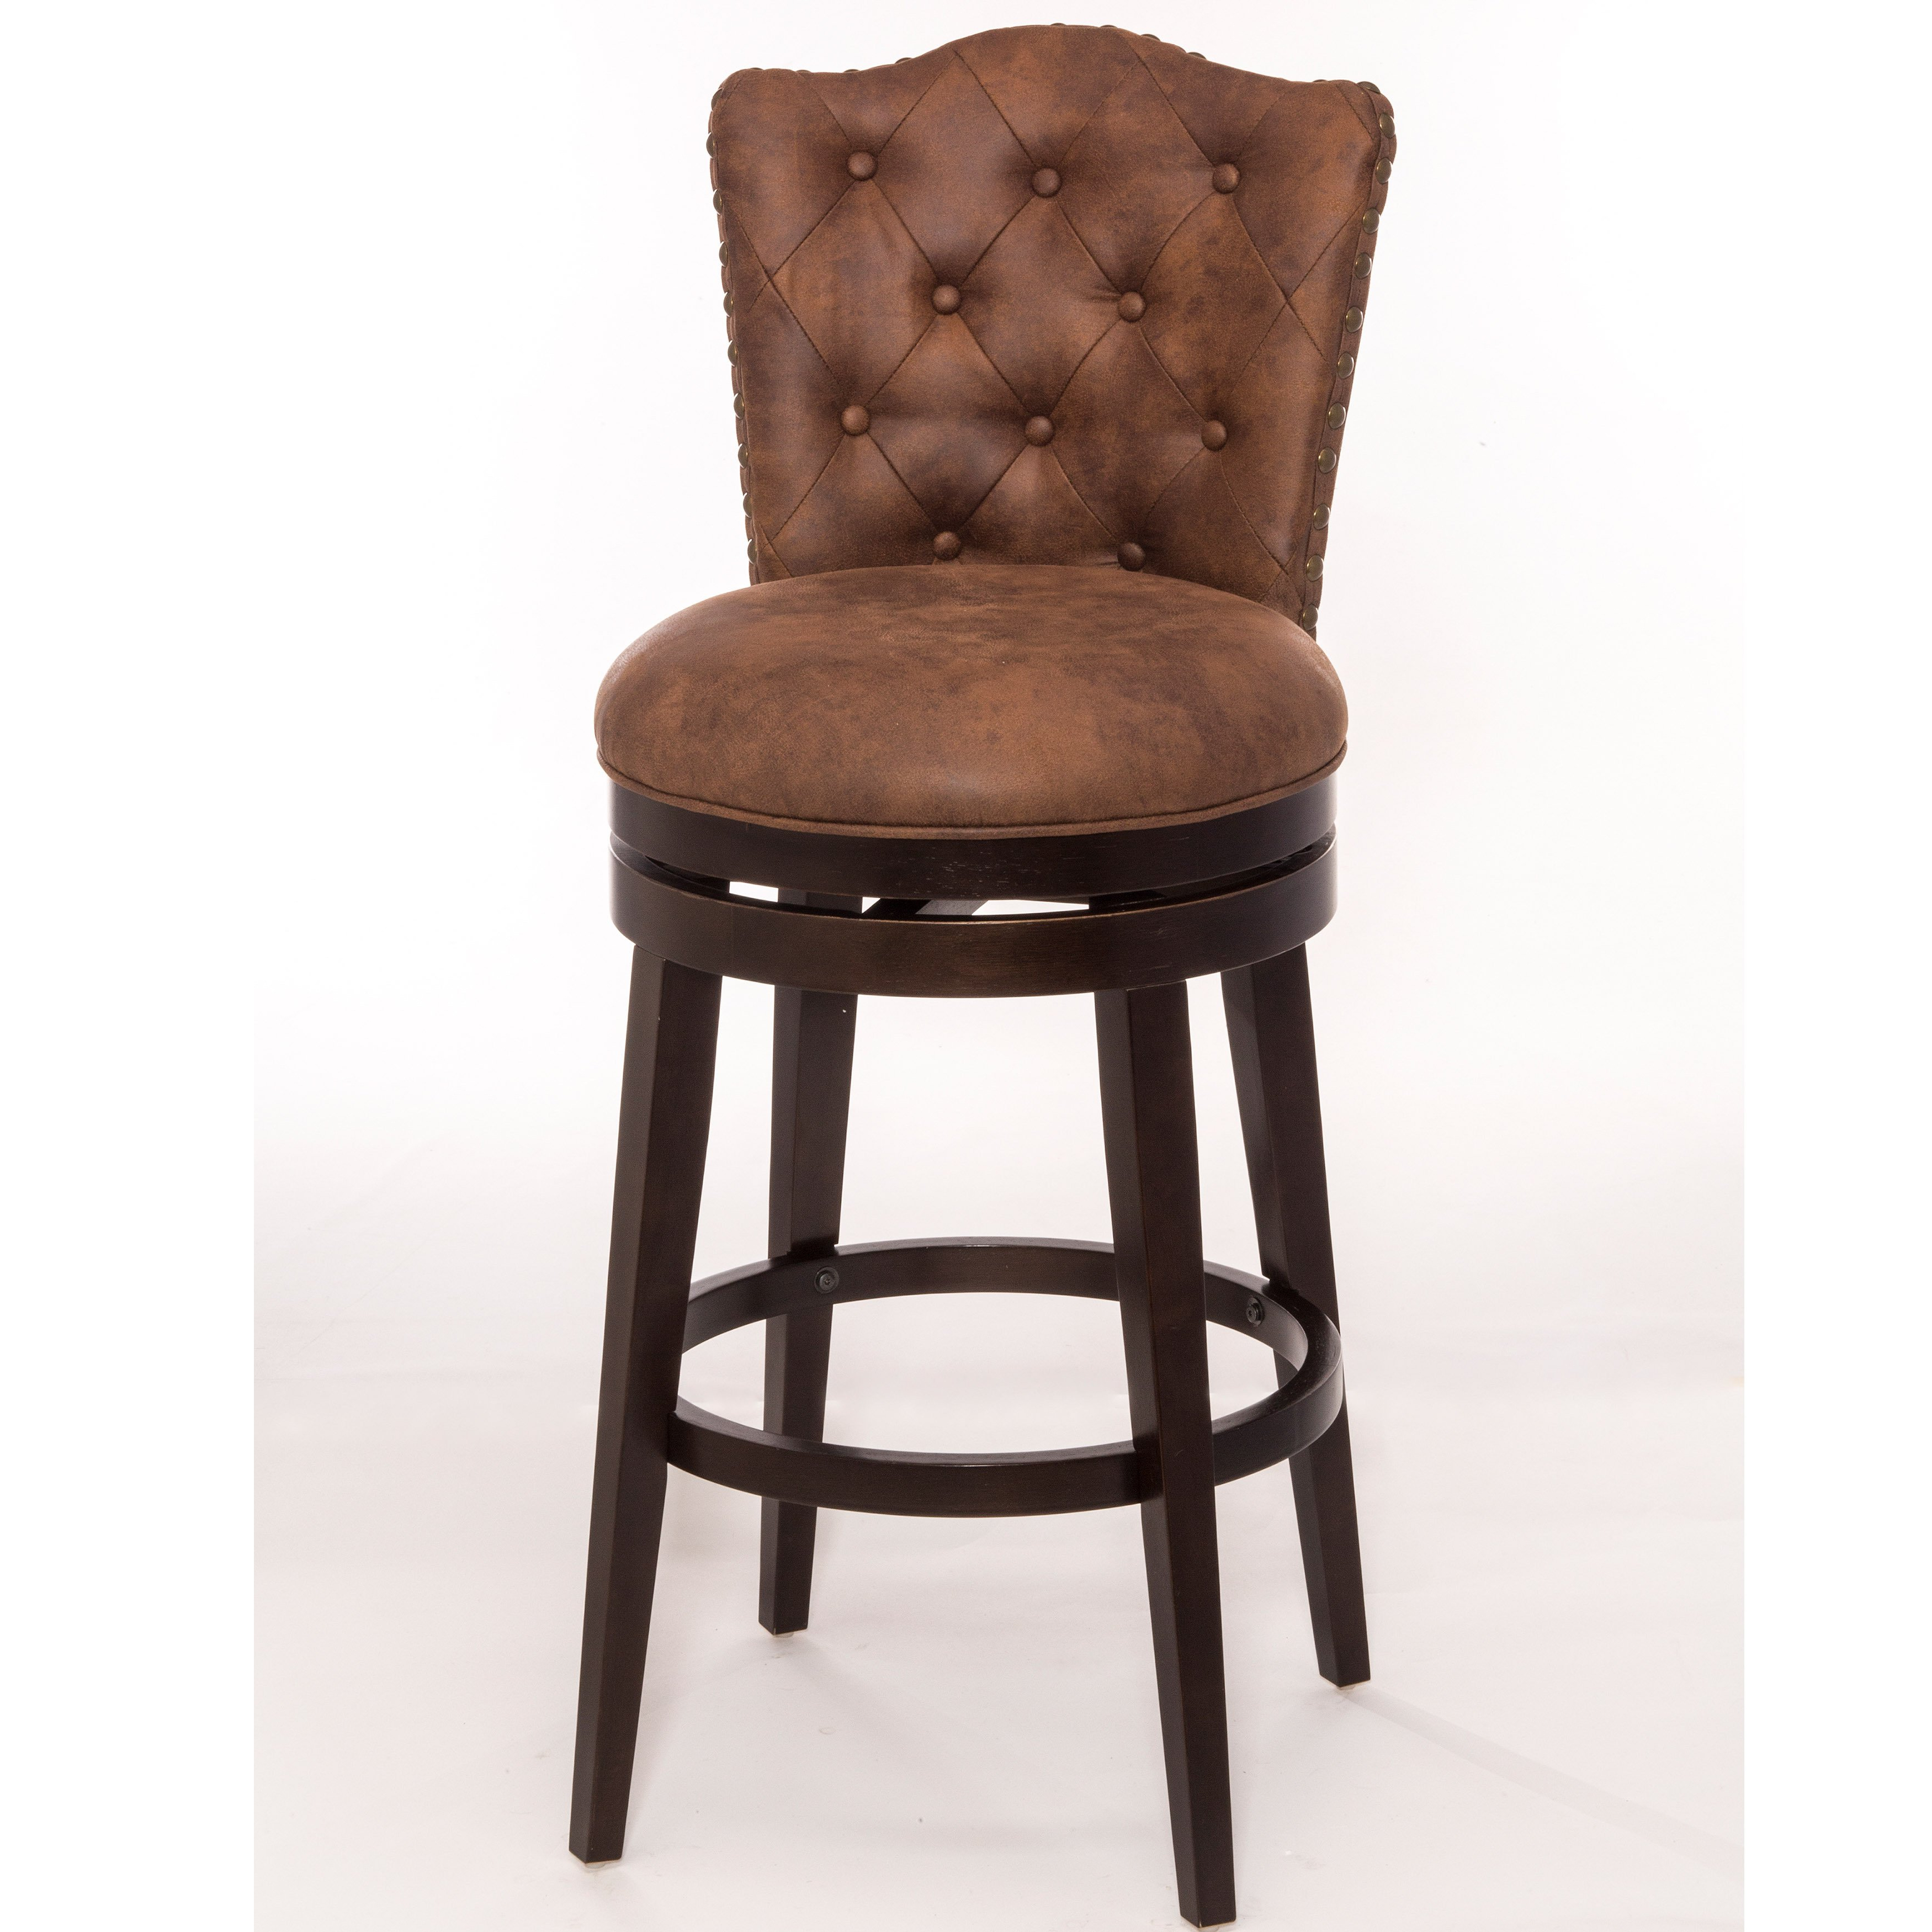 Shop Hillsdale Furniture Edenwood Swivel Bar Stool, Chocolate With Inside Preferred Chocolate Brown Leather Tufted Swivel Chairs (View 17 of 20)